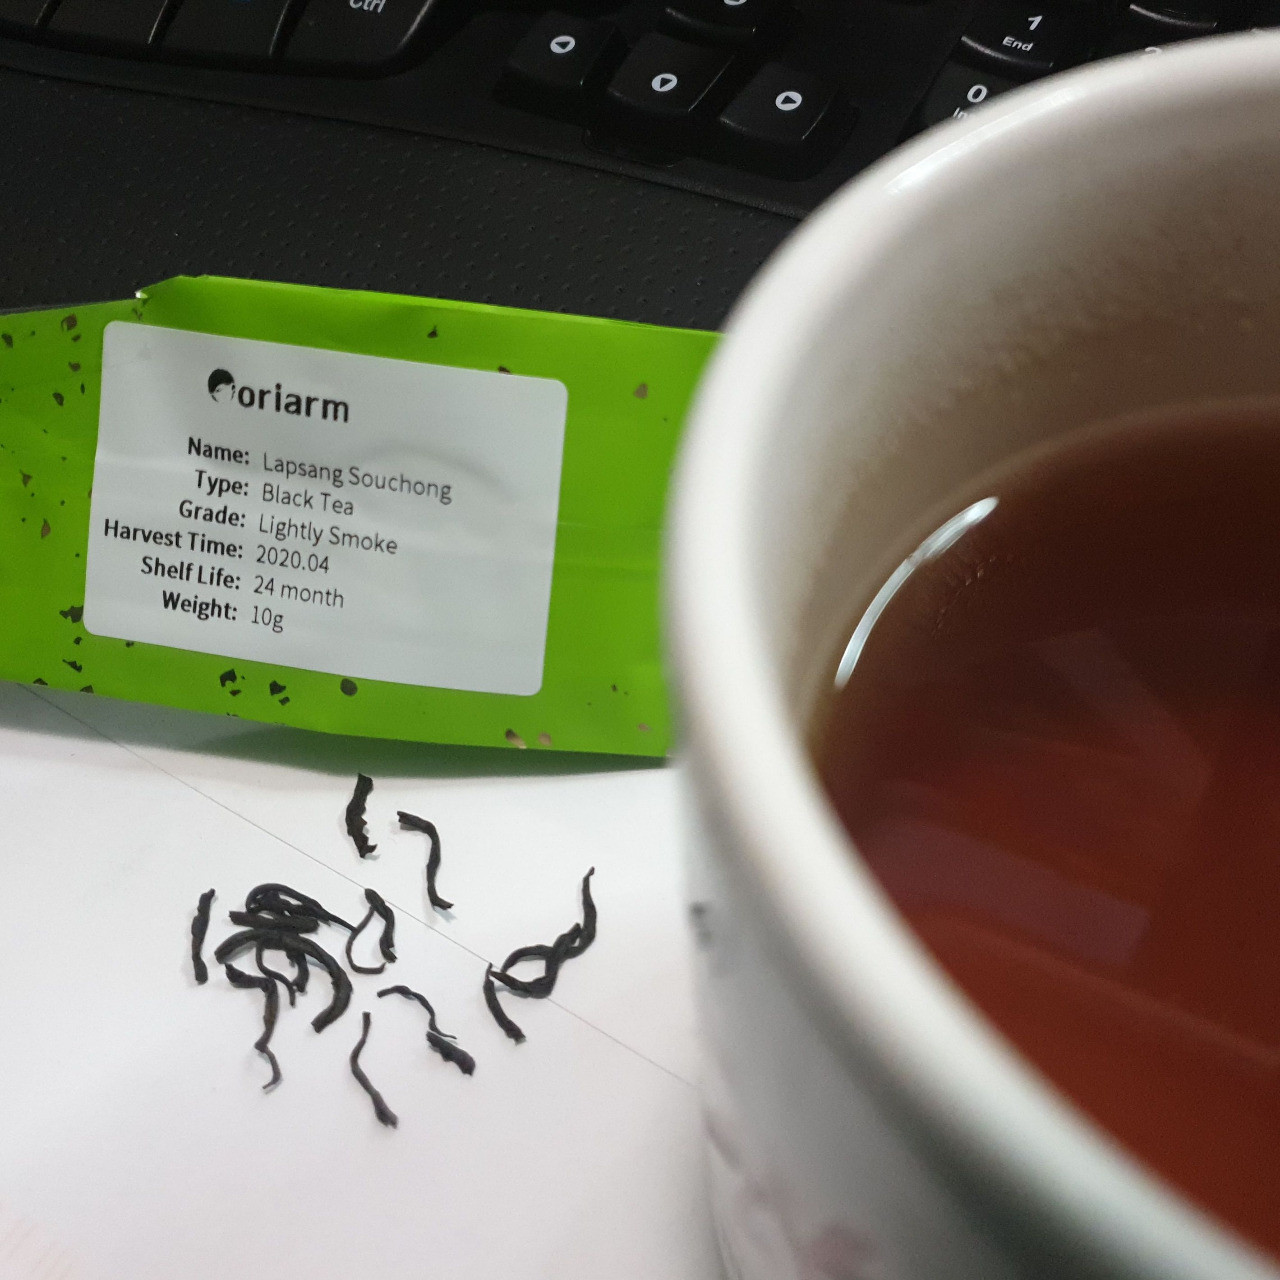 Lapsang Souchong black tea package with tea leaves next to it and a partially visible cup of brewed tea.